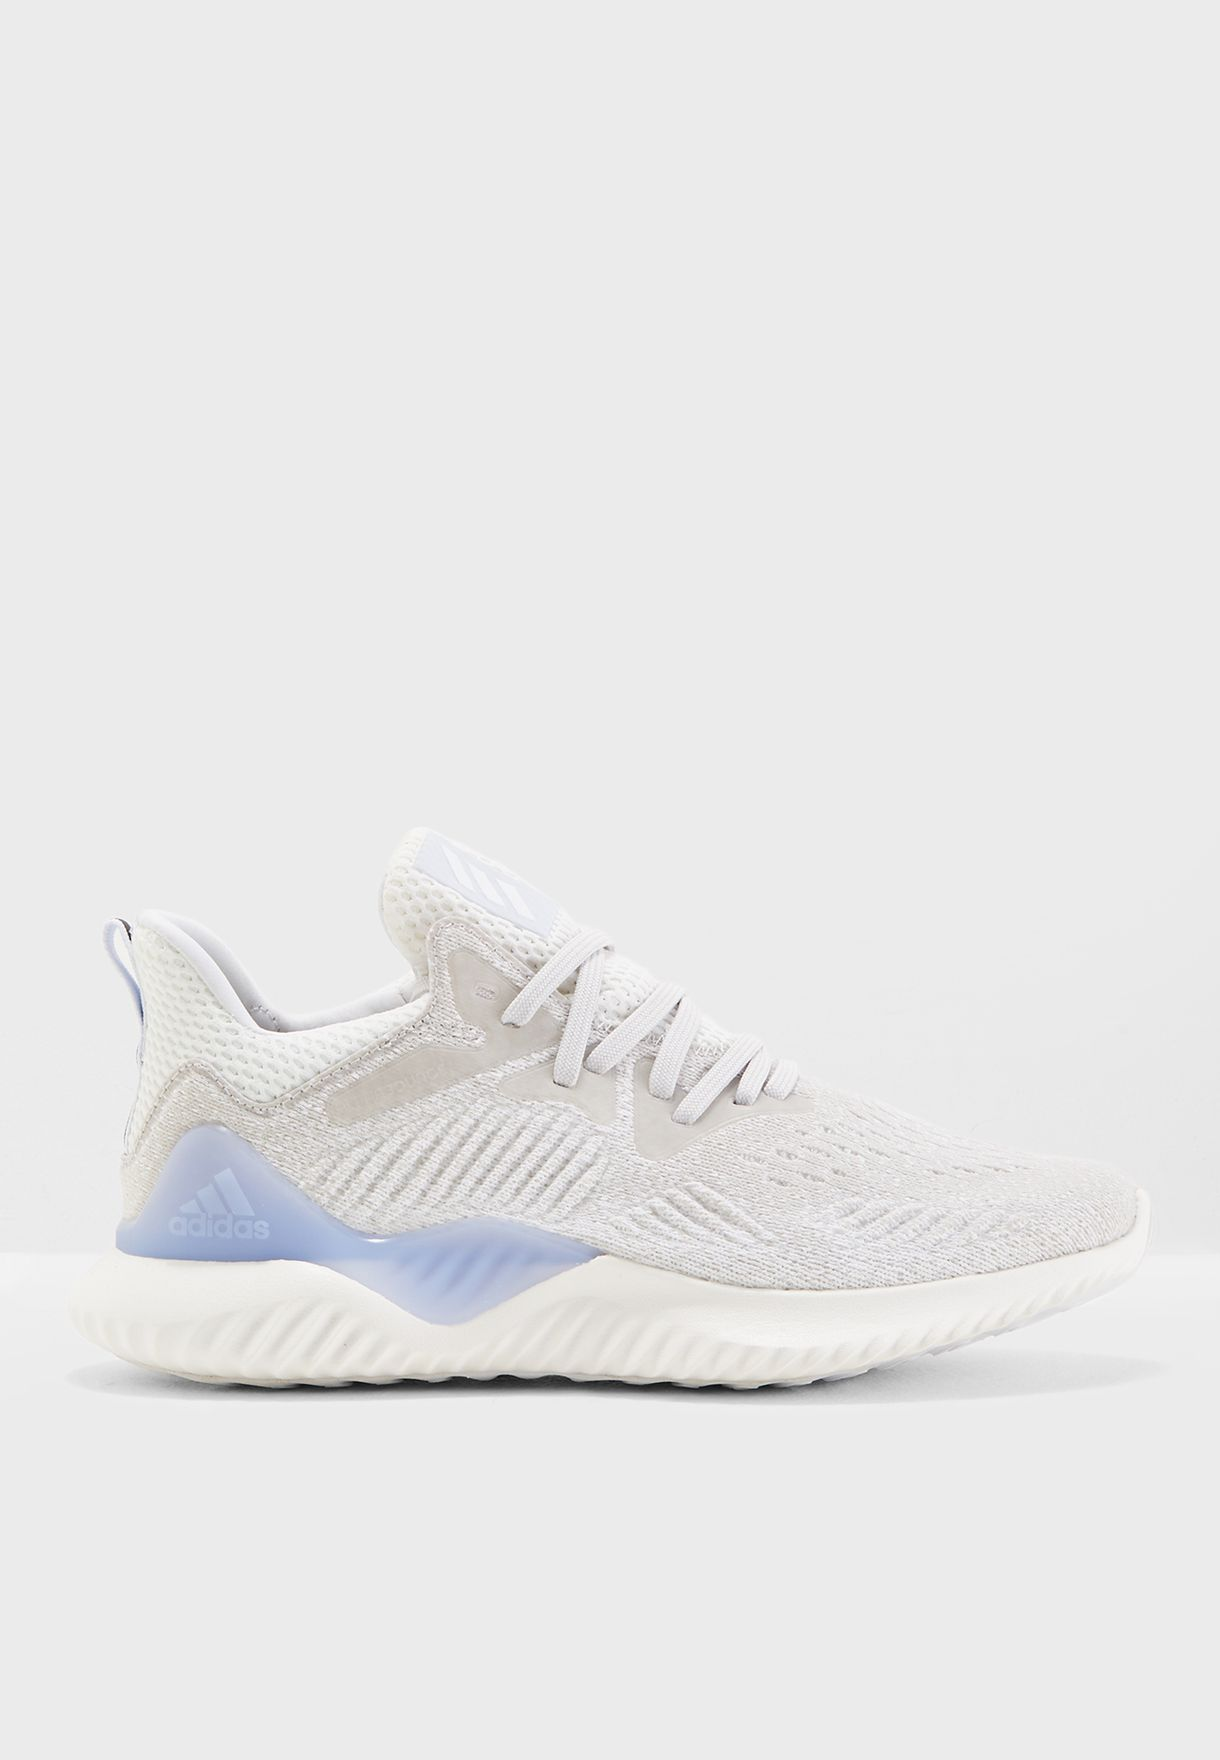 9ccf117acc433 Shop adidas white Alphabounce Beyond AQ0572 for Men in UAE ...